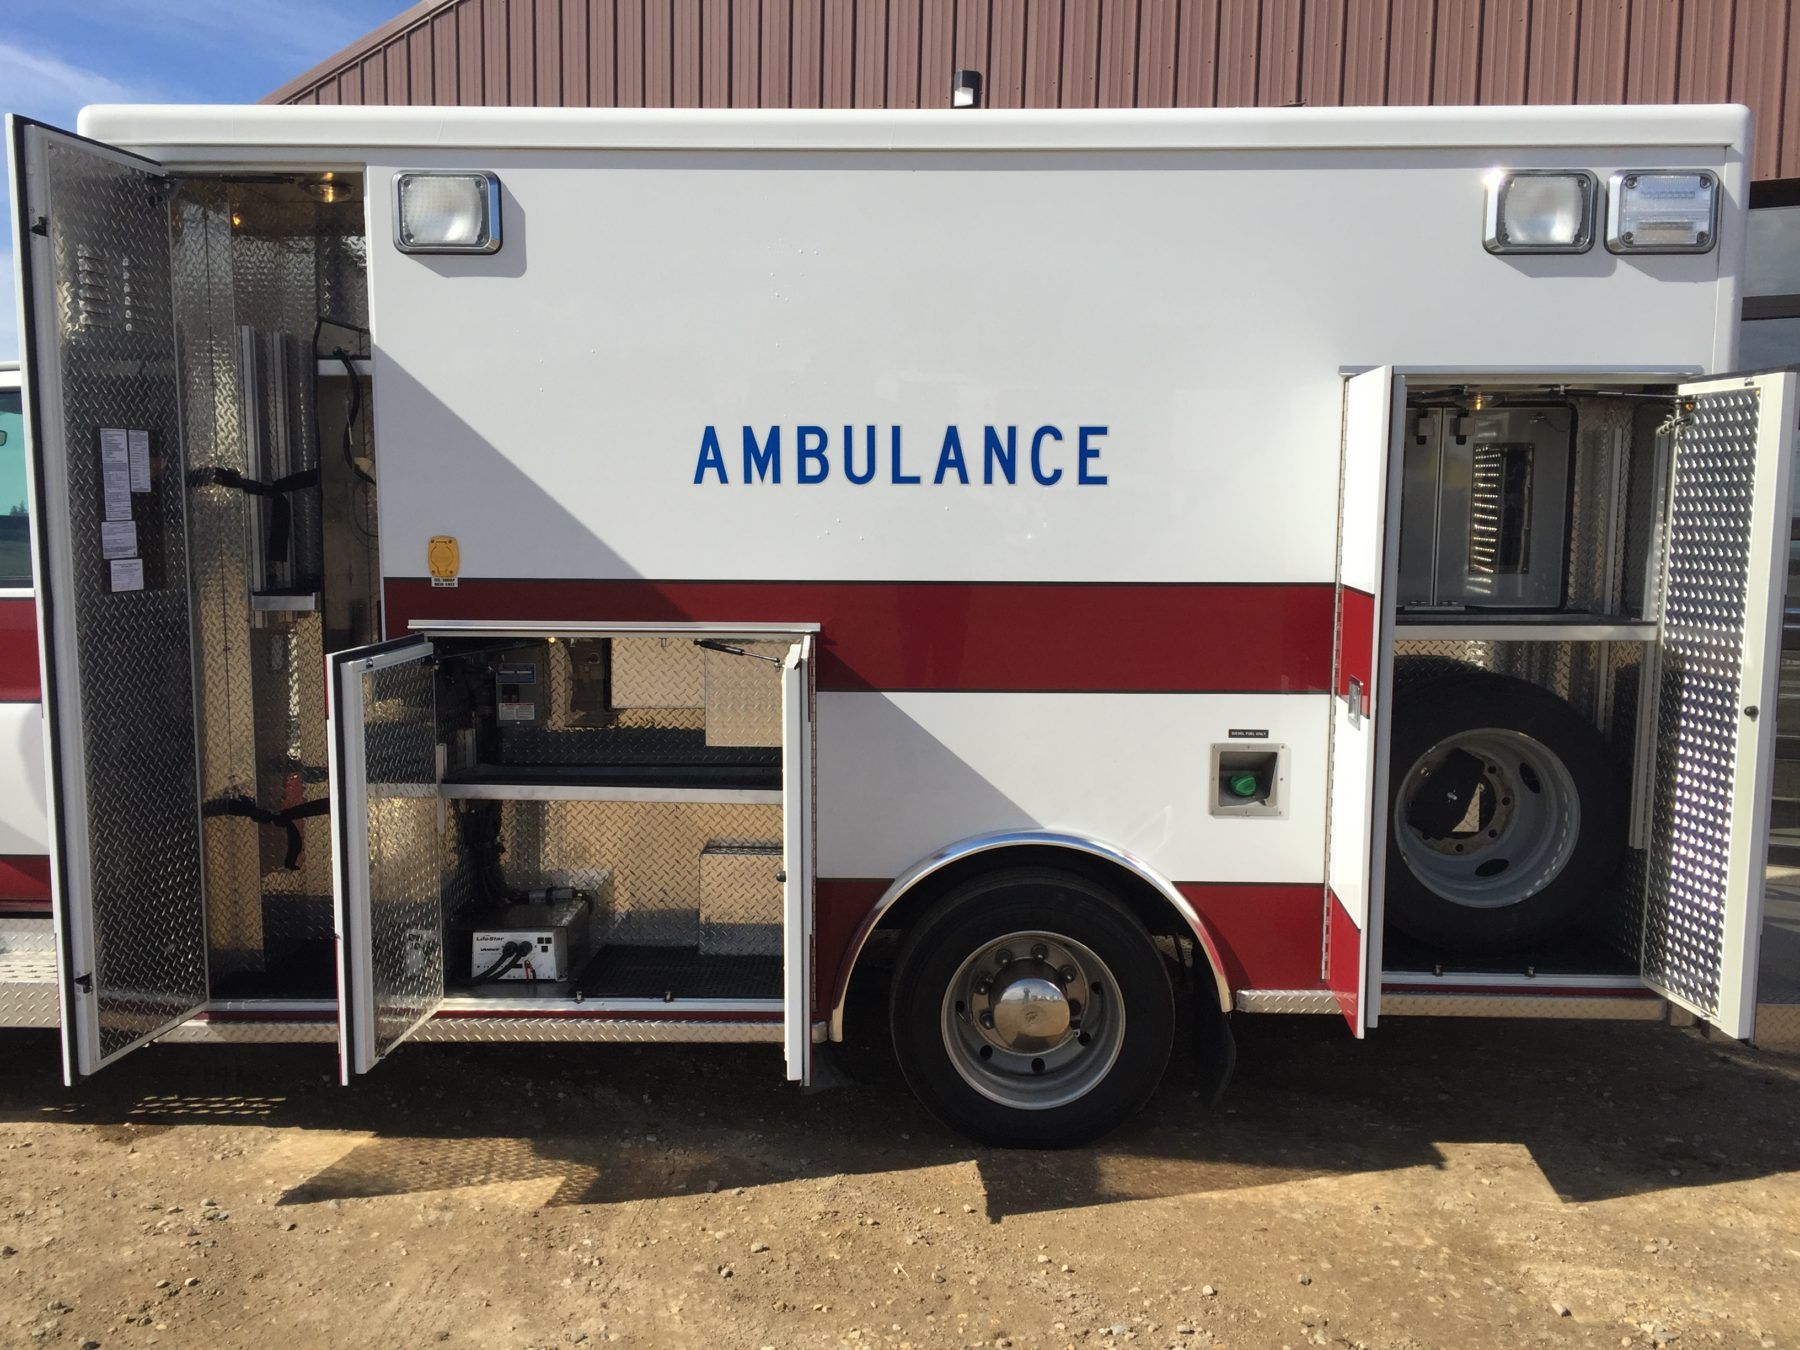 2009 Chevrolet C4500 Heavy Duty Ambulance For Sale – Picture 9